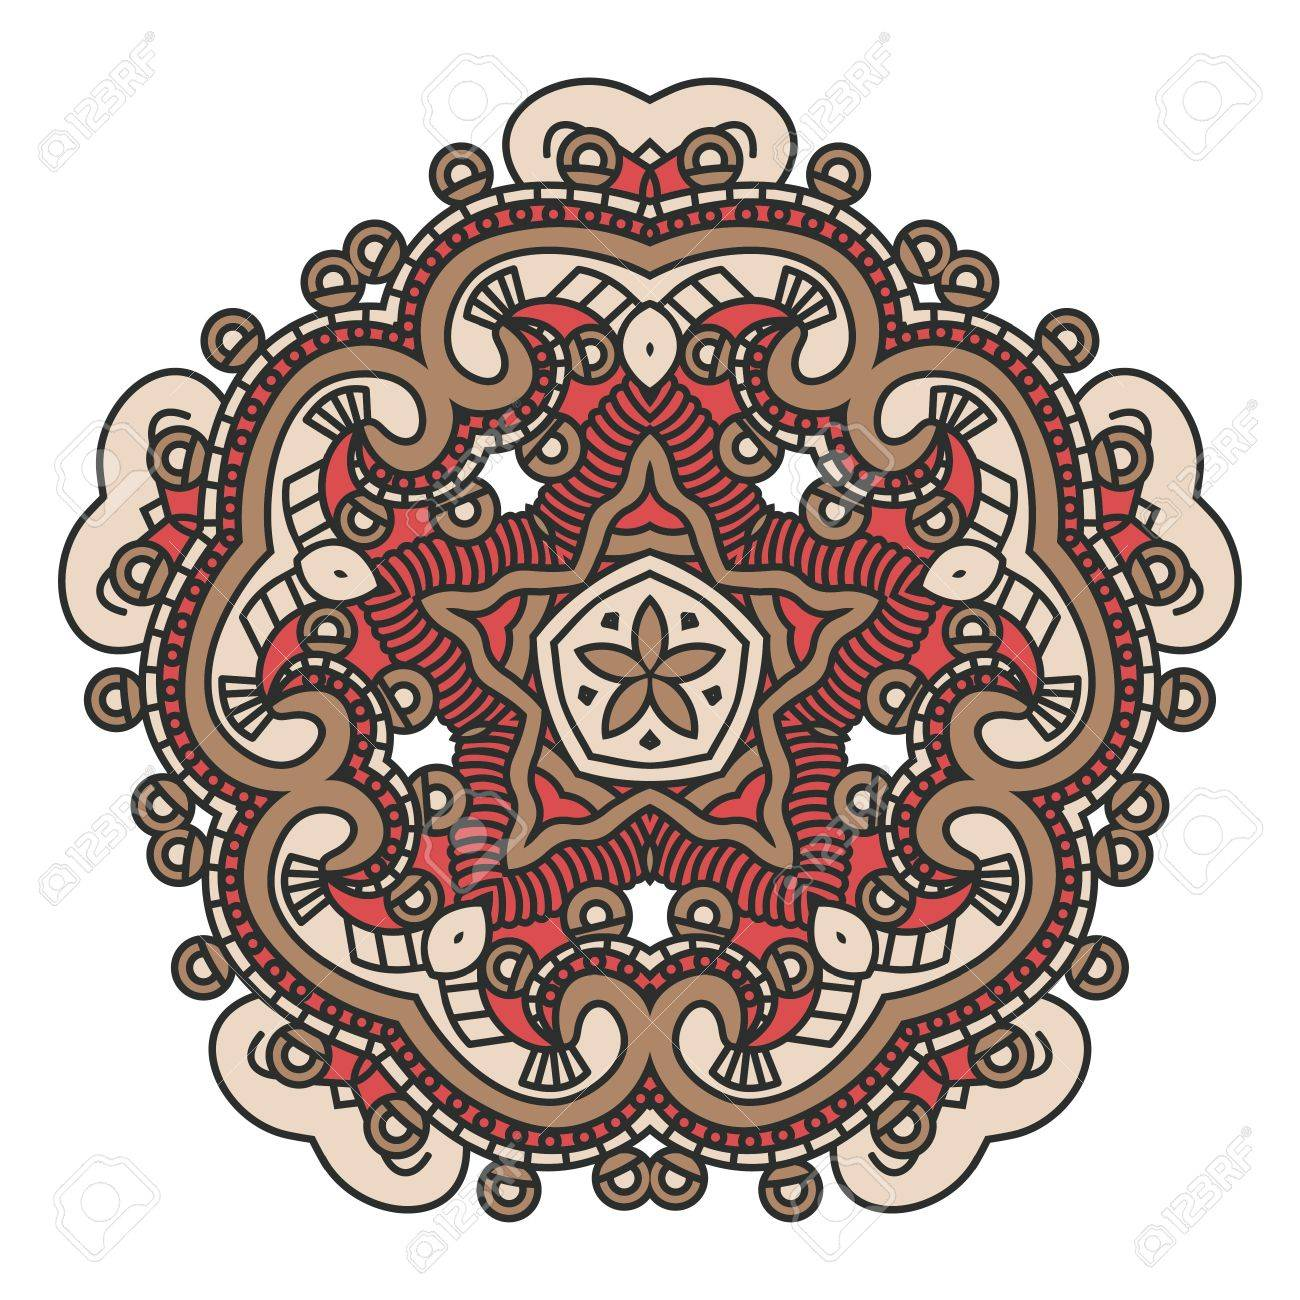 Colorful ethnicity round ornament, mosaic  stained glass Stock Vector - 15415252